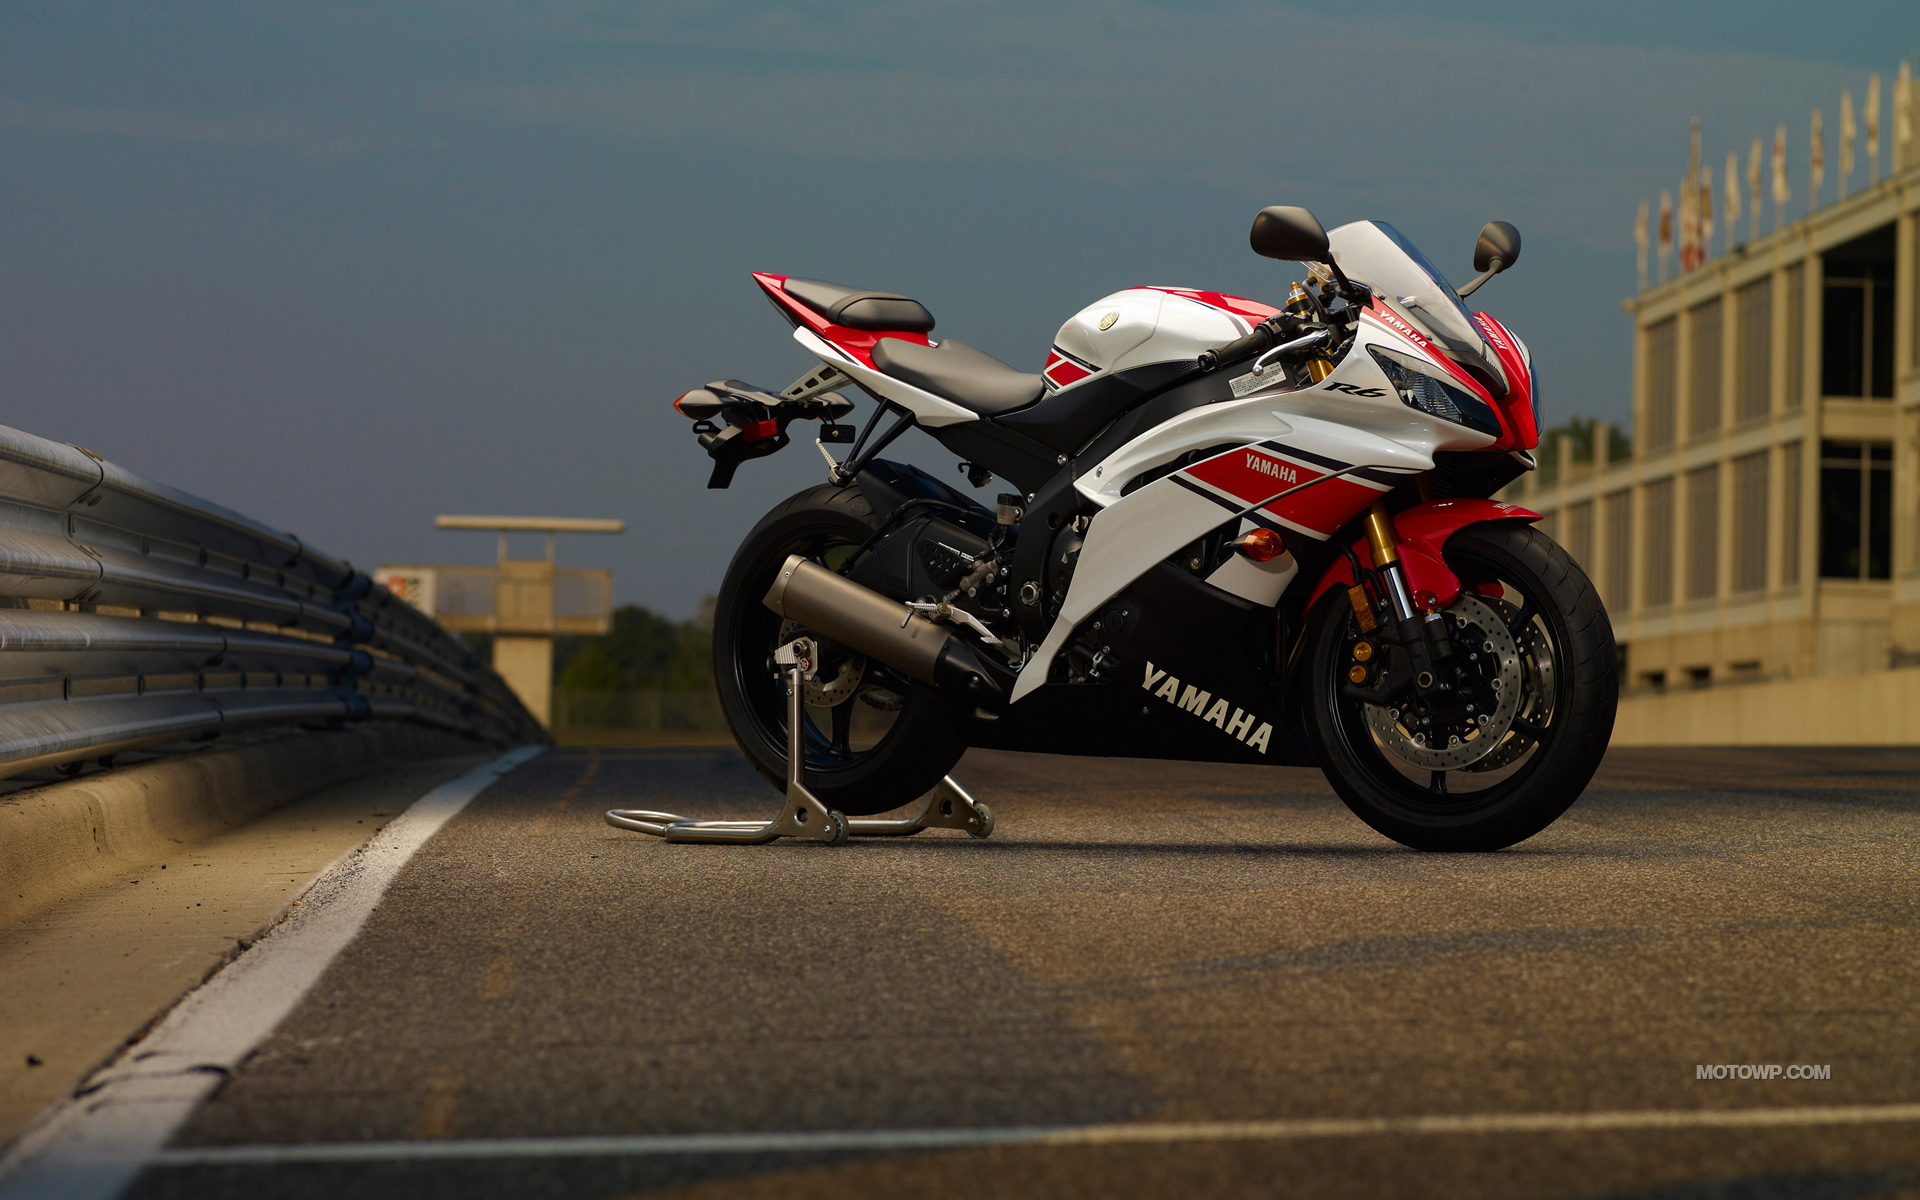 HD Yamaha Wallpaper Background Images For Download 1920x1200